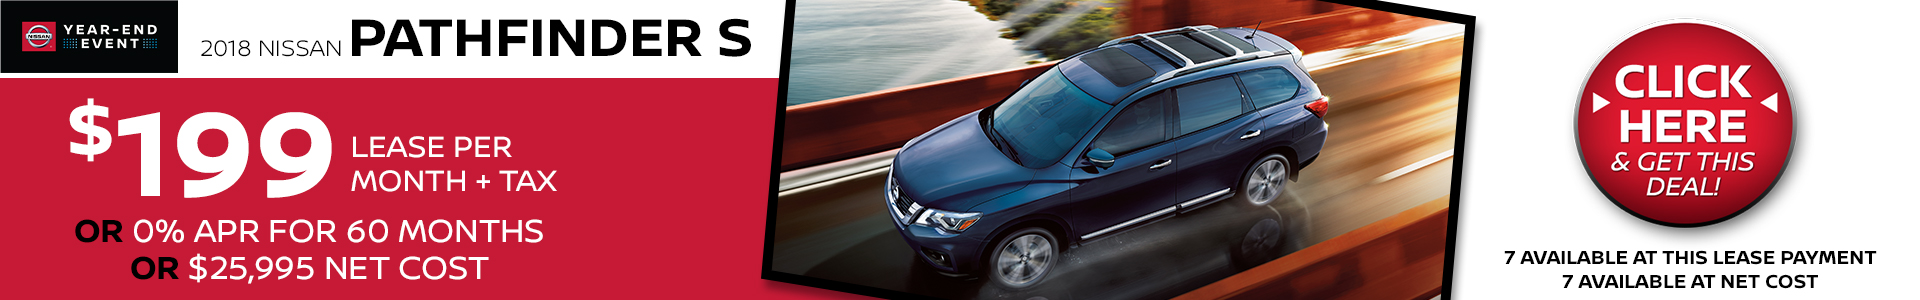 Mossy Nissan - Nissan Pathfinder $199 Lease